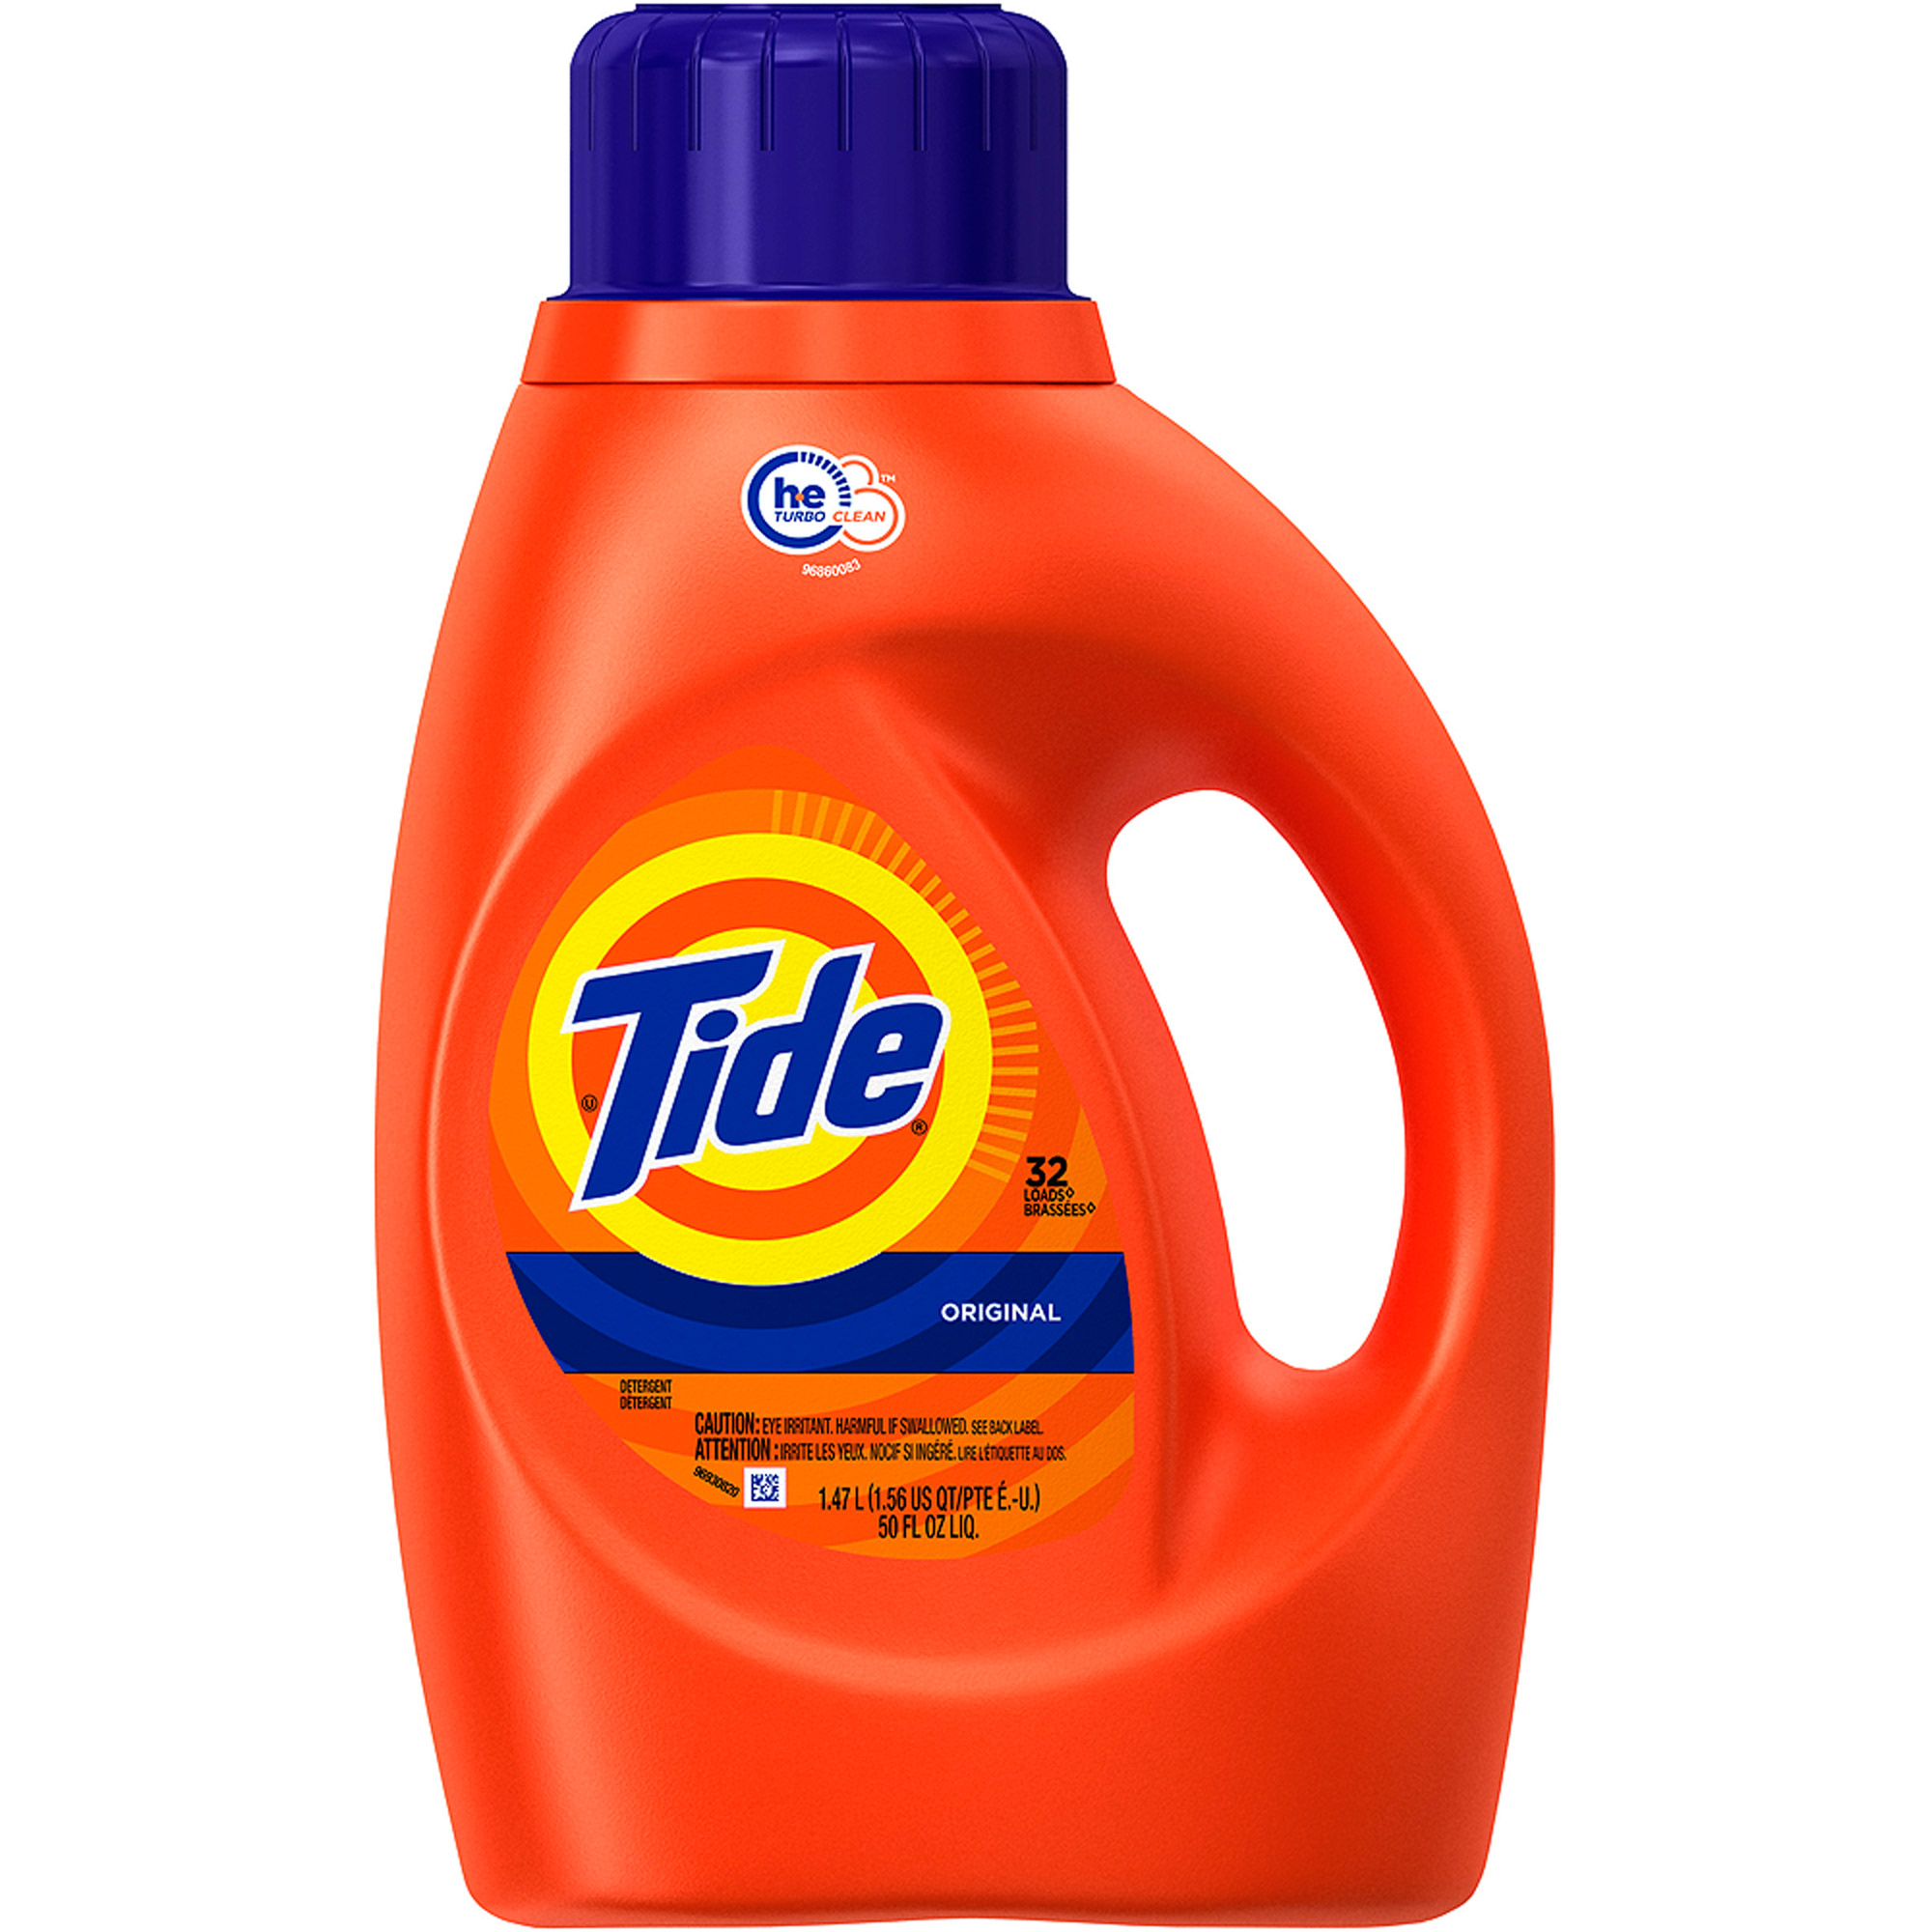 Tide Original Scent HE Turbo Clean Liquid Laundry Detergent, 32 Loads 50 oz